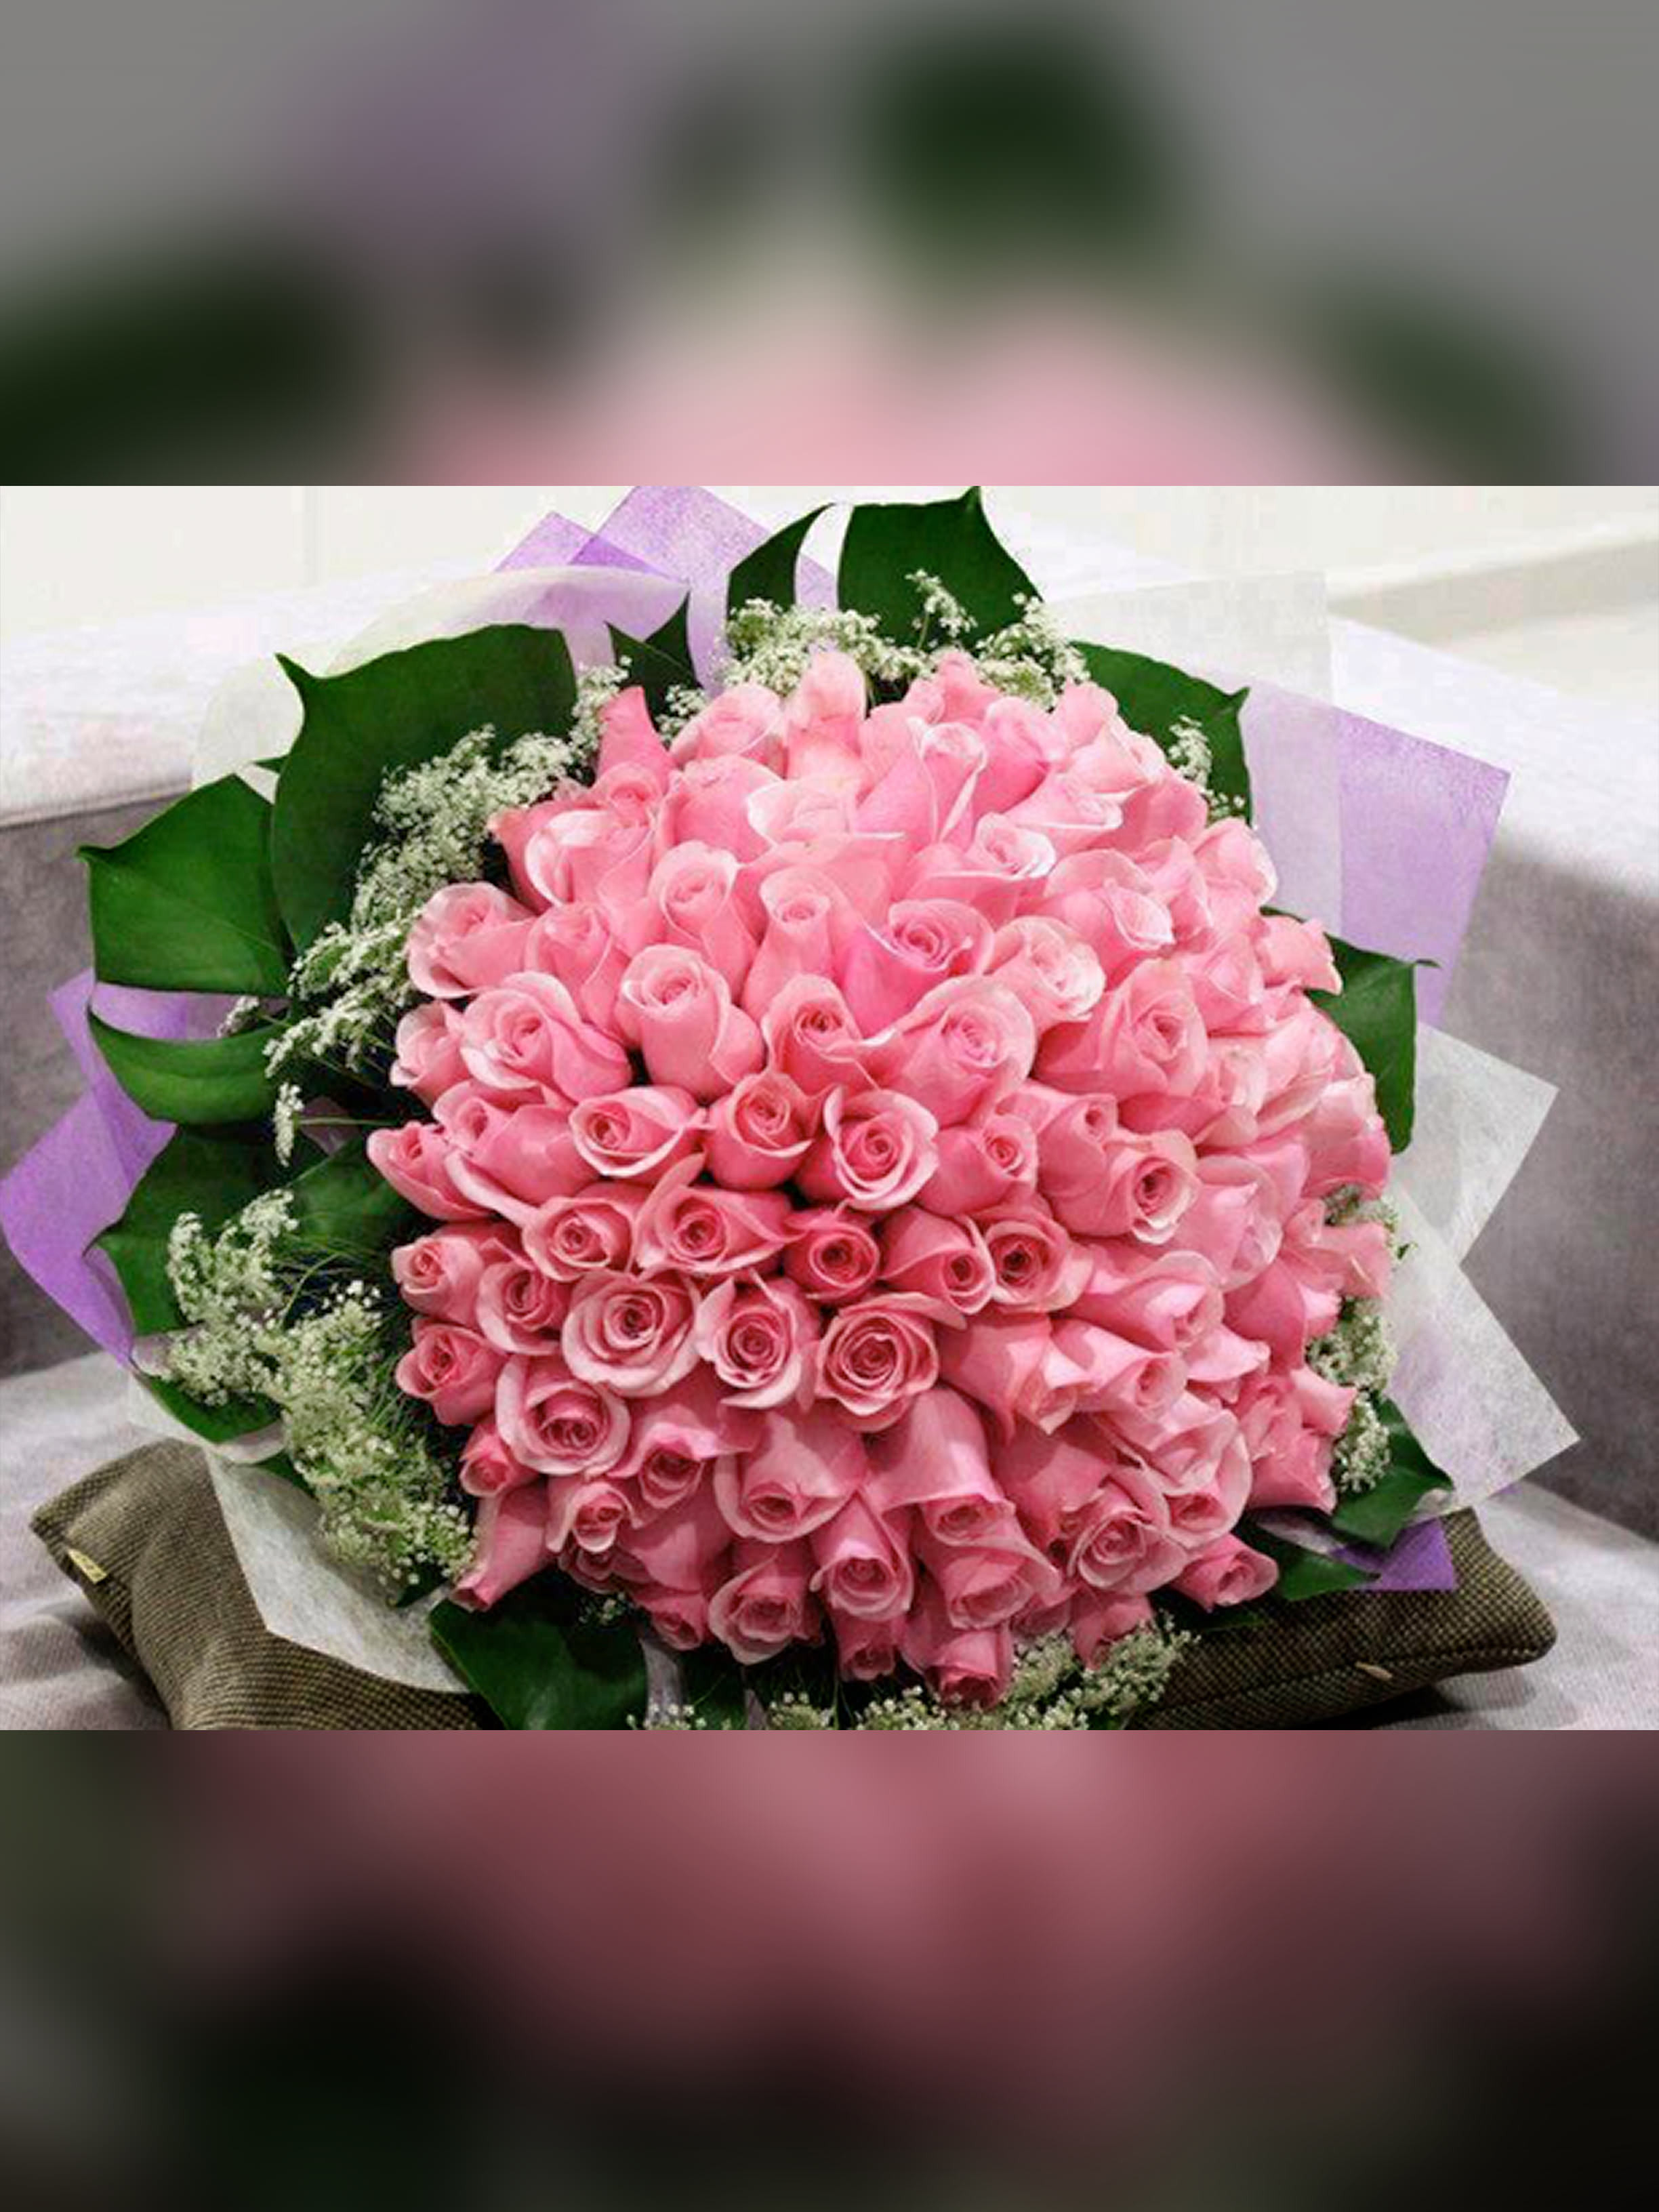 Home page breathtaking rose bouquet izmirmasajfo Gallery